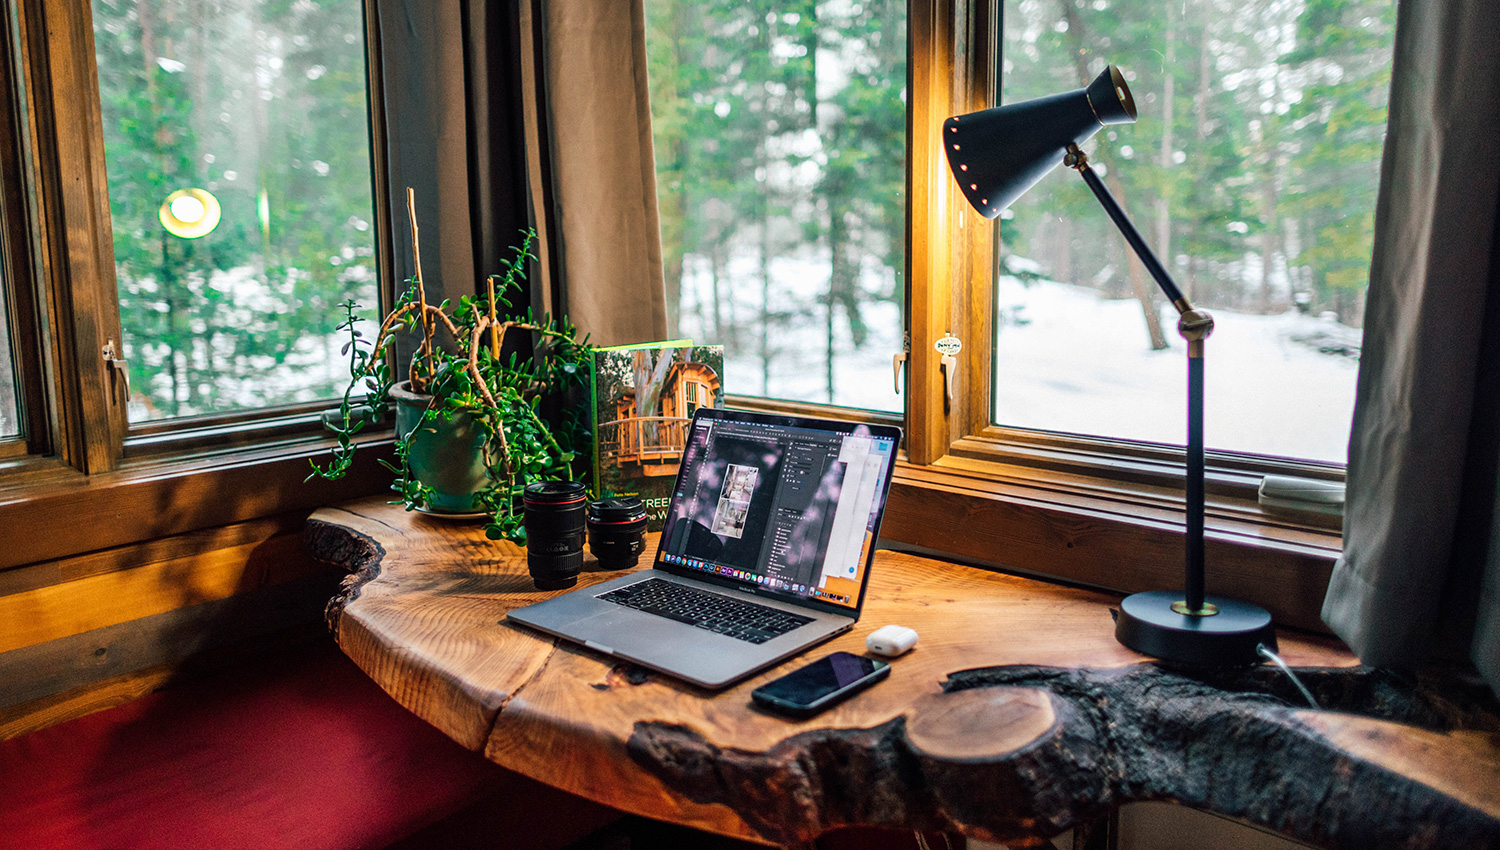 A desk made from a live edge of wood with a laptop, house plant, and lamp